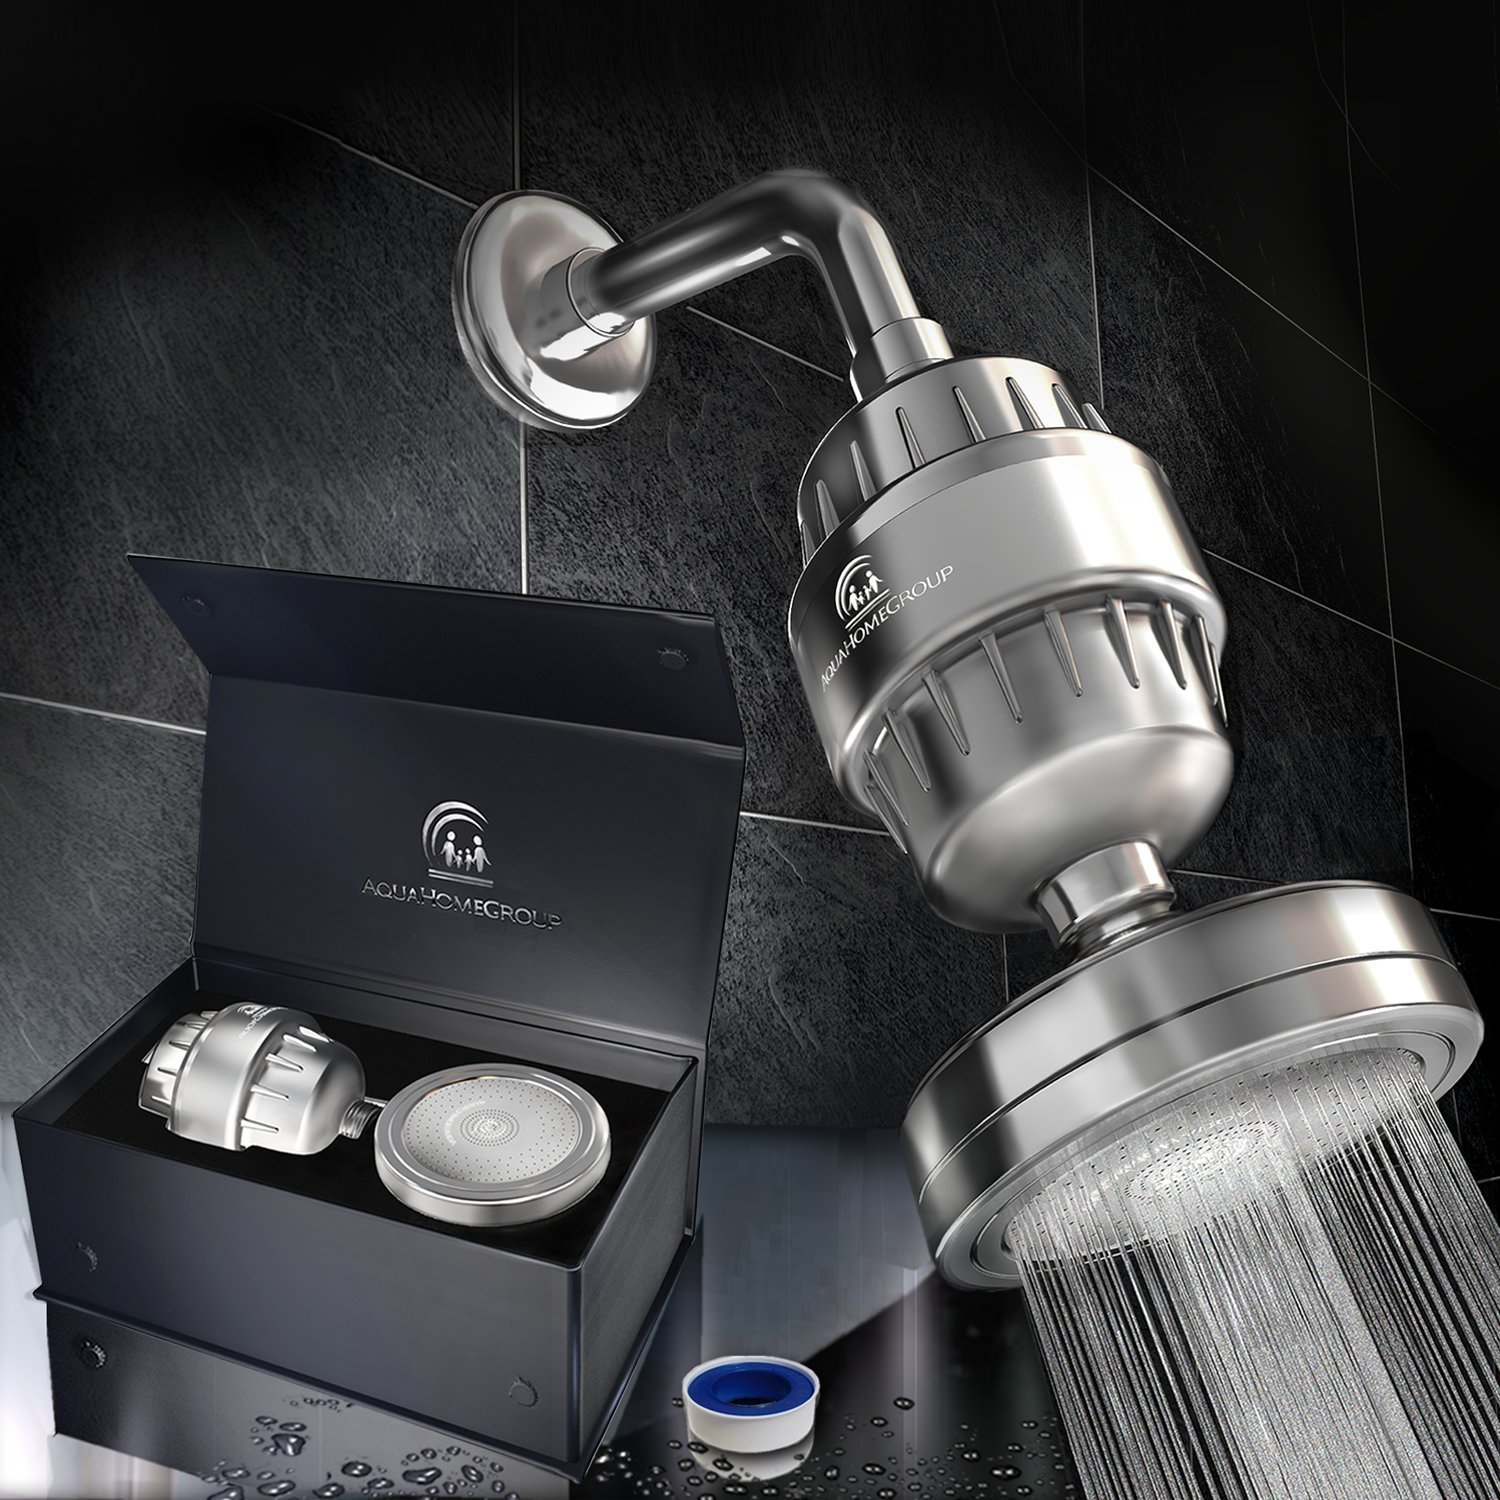 AquaHomeGroupLuxury Filtered Shower Head Set